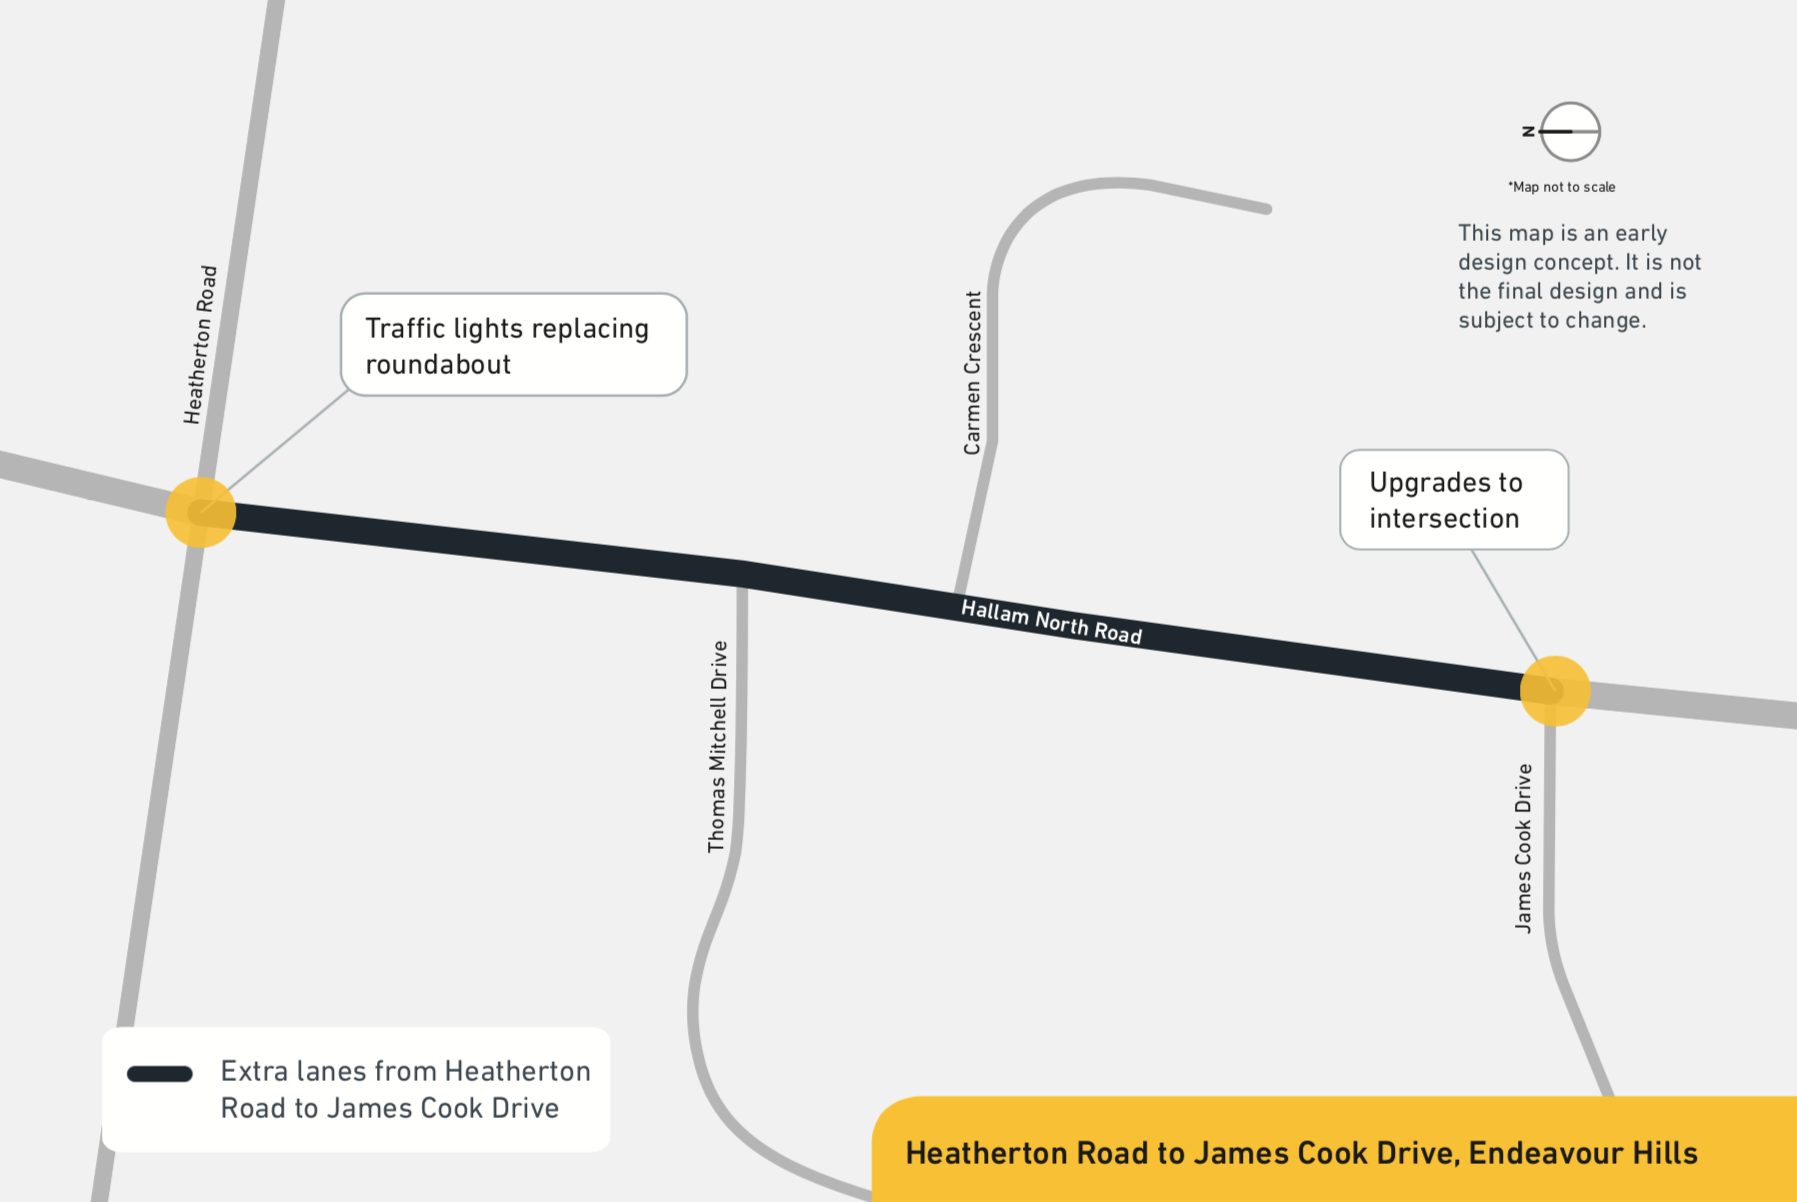 As part of the upgrade, we plan to: add an extra lane in each direction between Heatherton Road and James Cook Drive upgrade the roundabout with traffic lights at Heatherton Road build a walking and cycling path install safety barriers along the road.